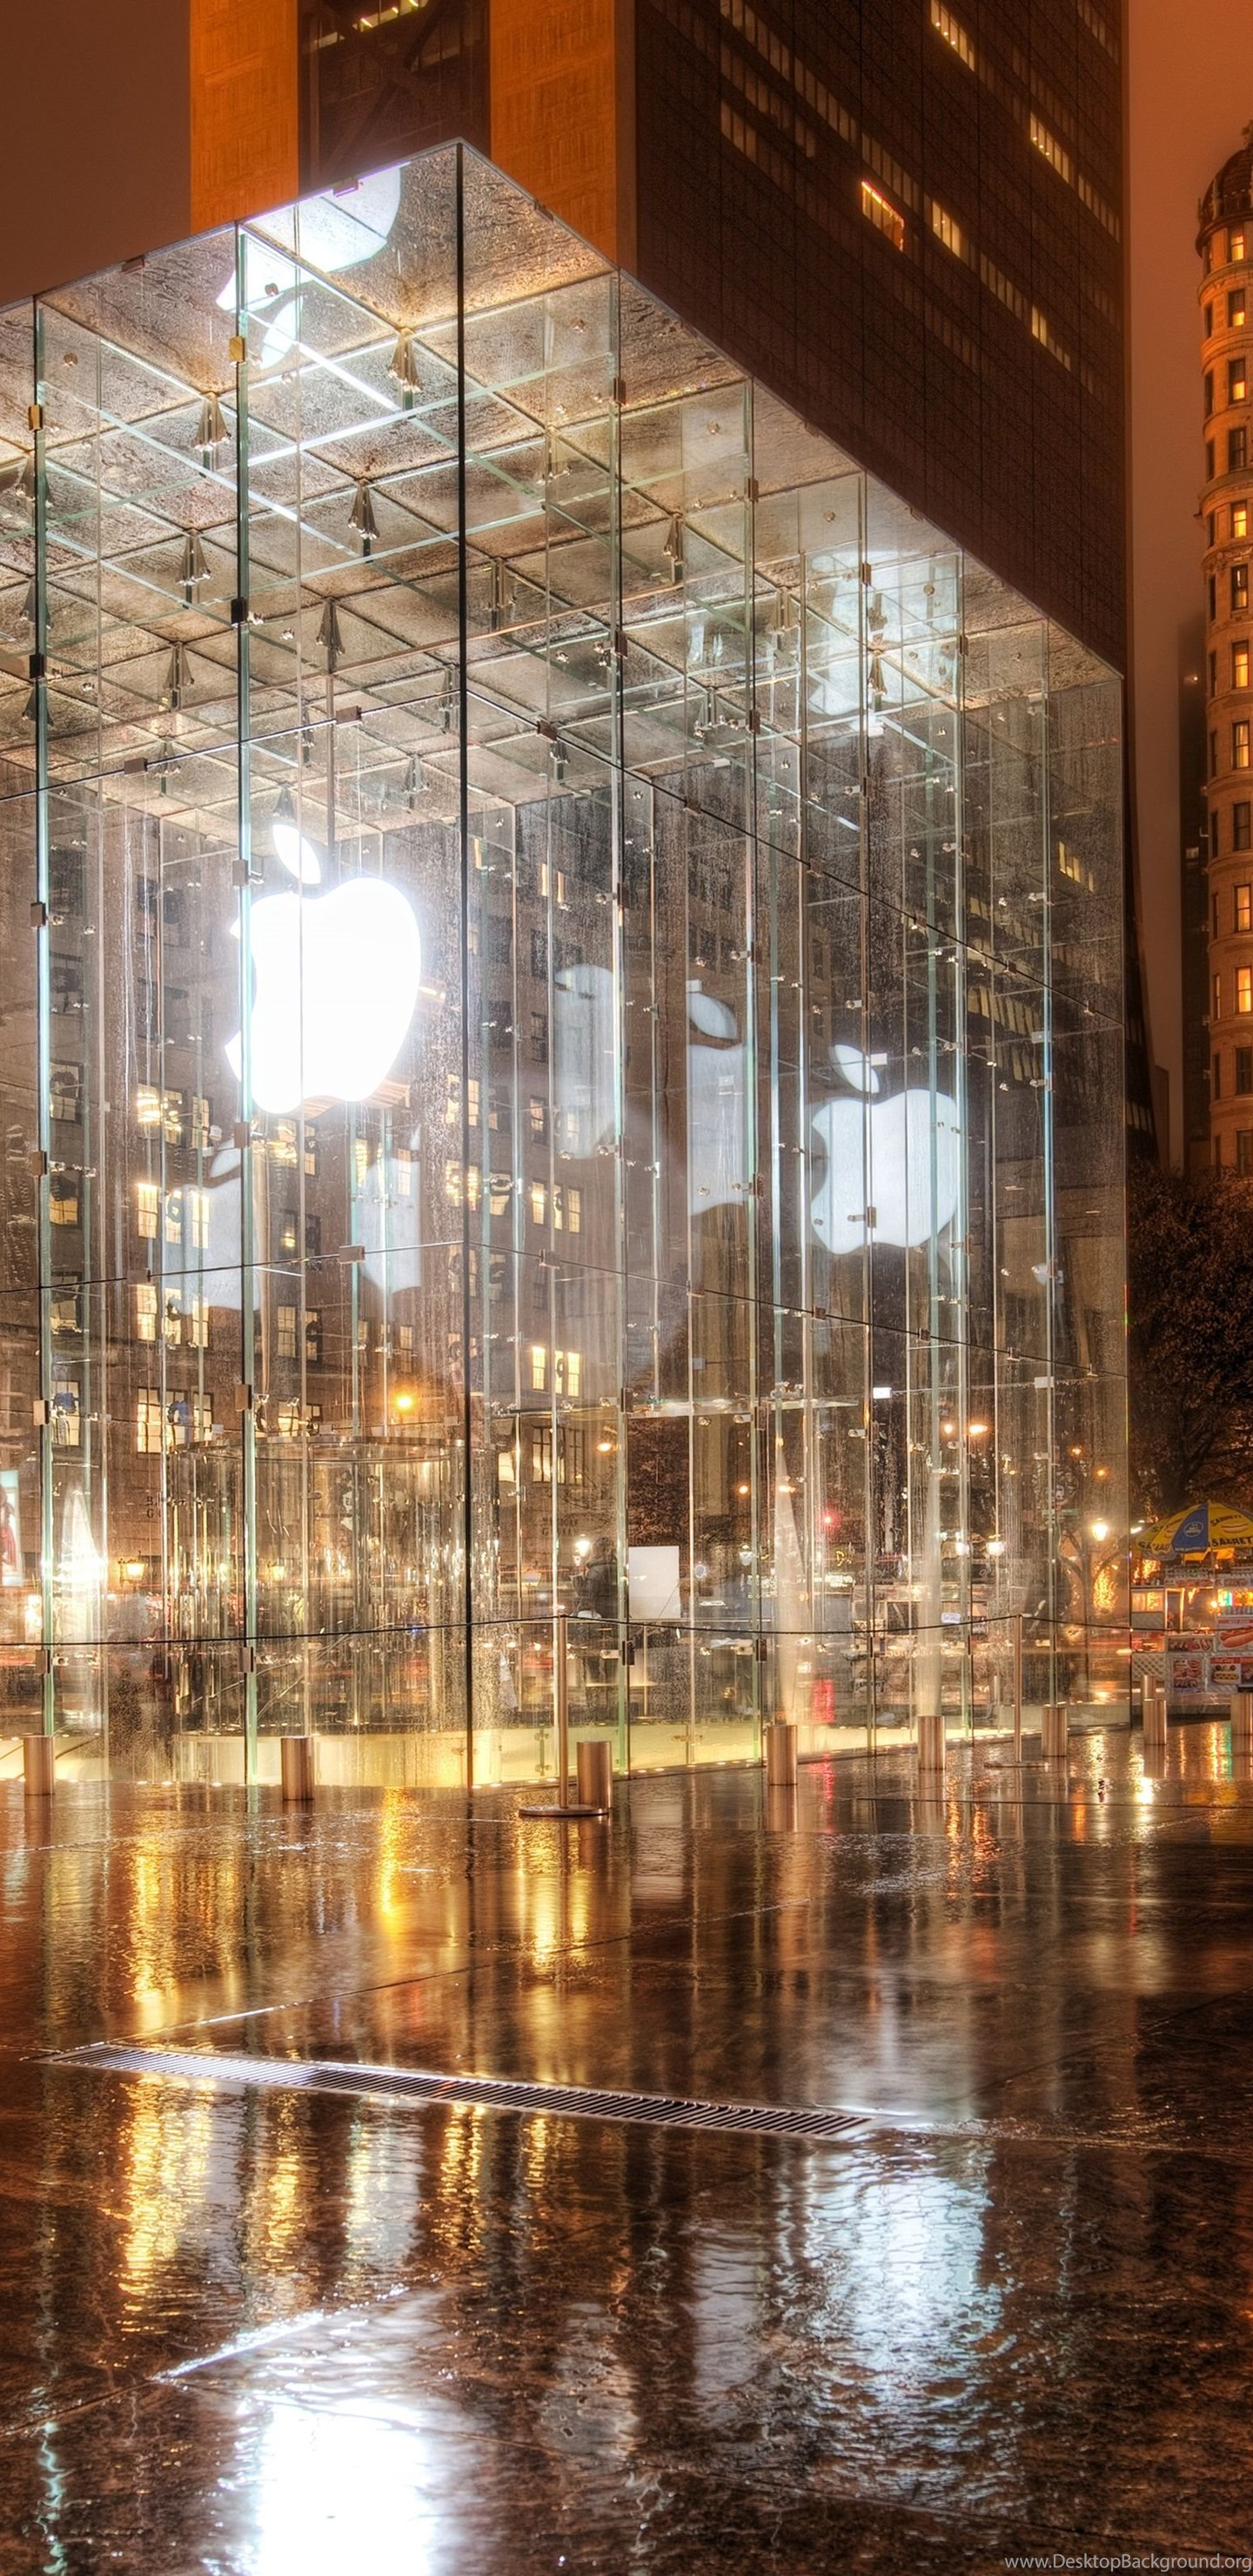 Apple Store New York Wallpapers Full Hd 5120x3200 Free Desktop Background